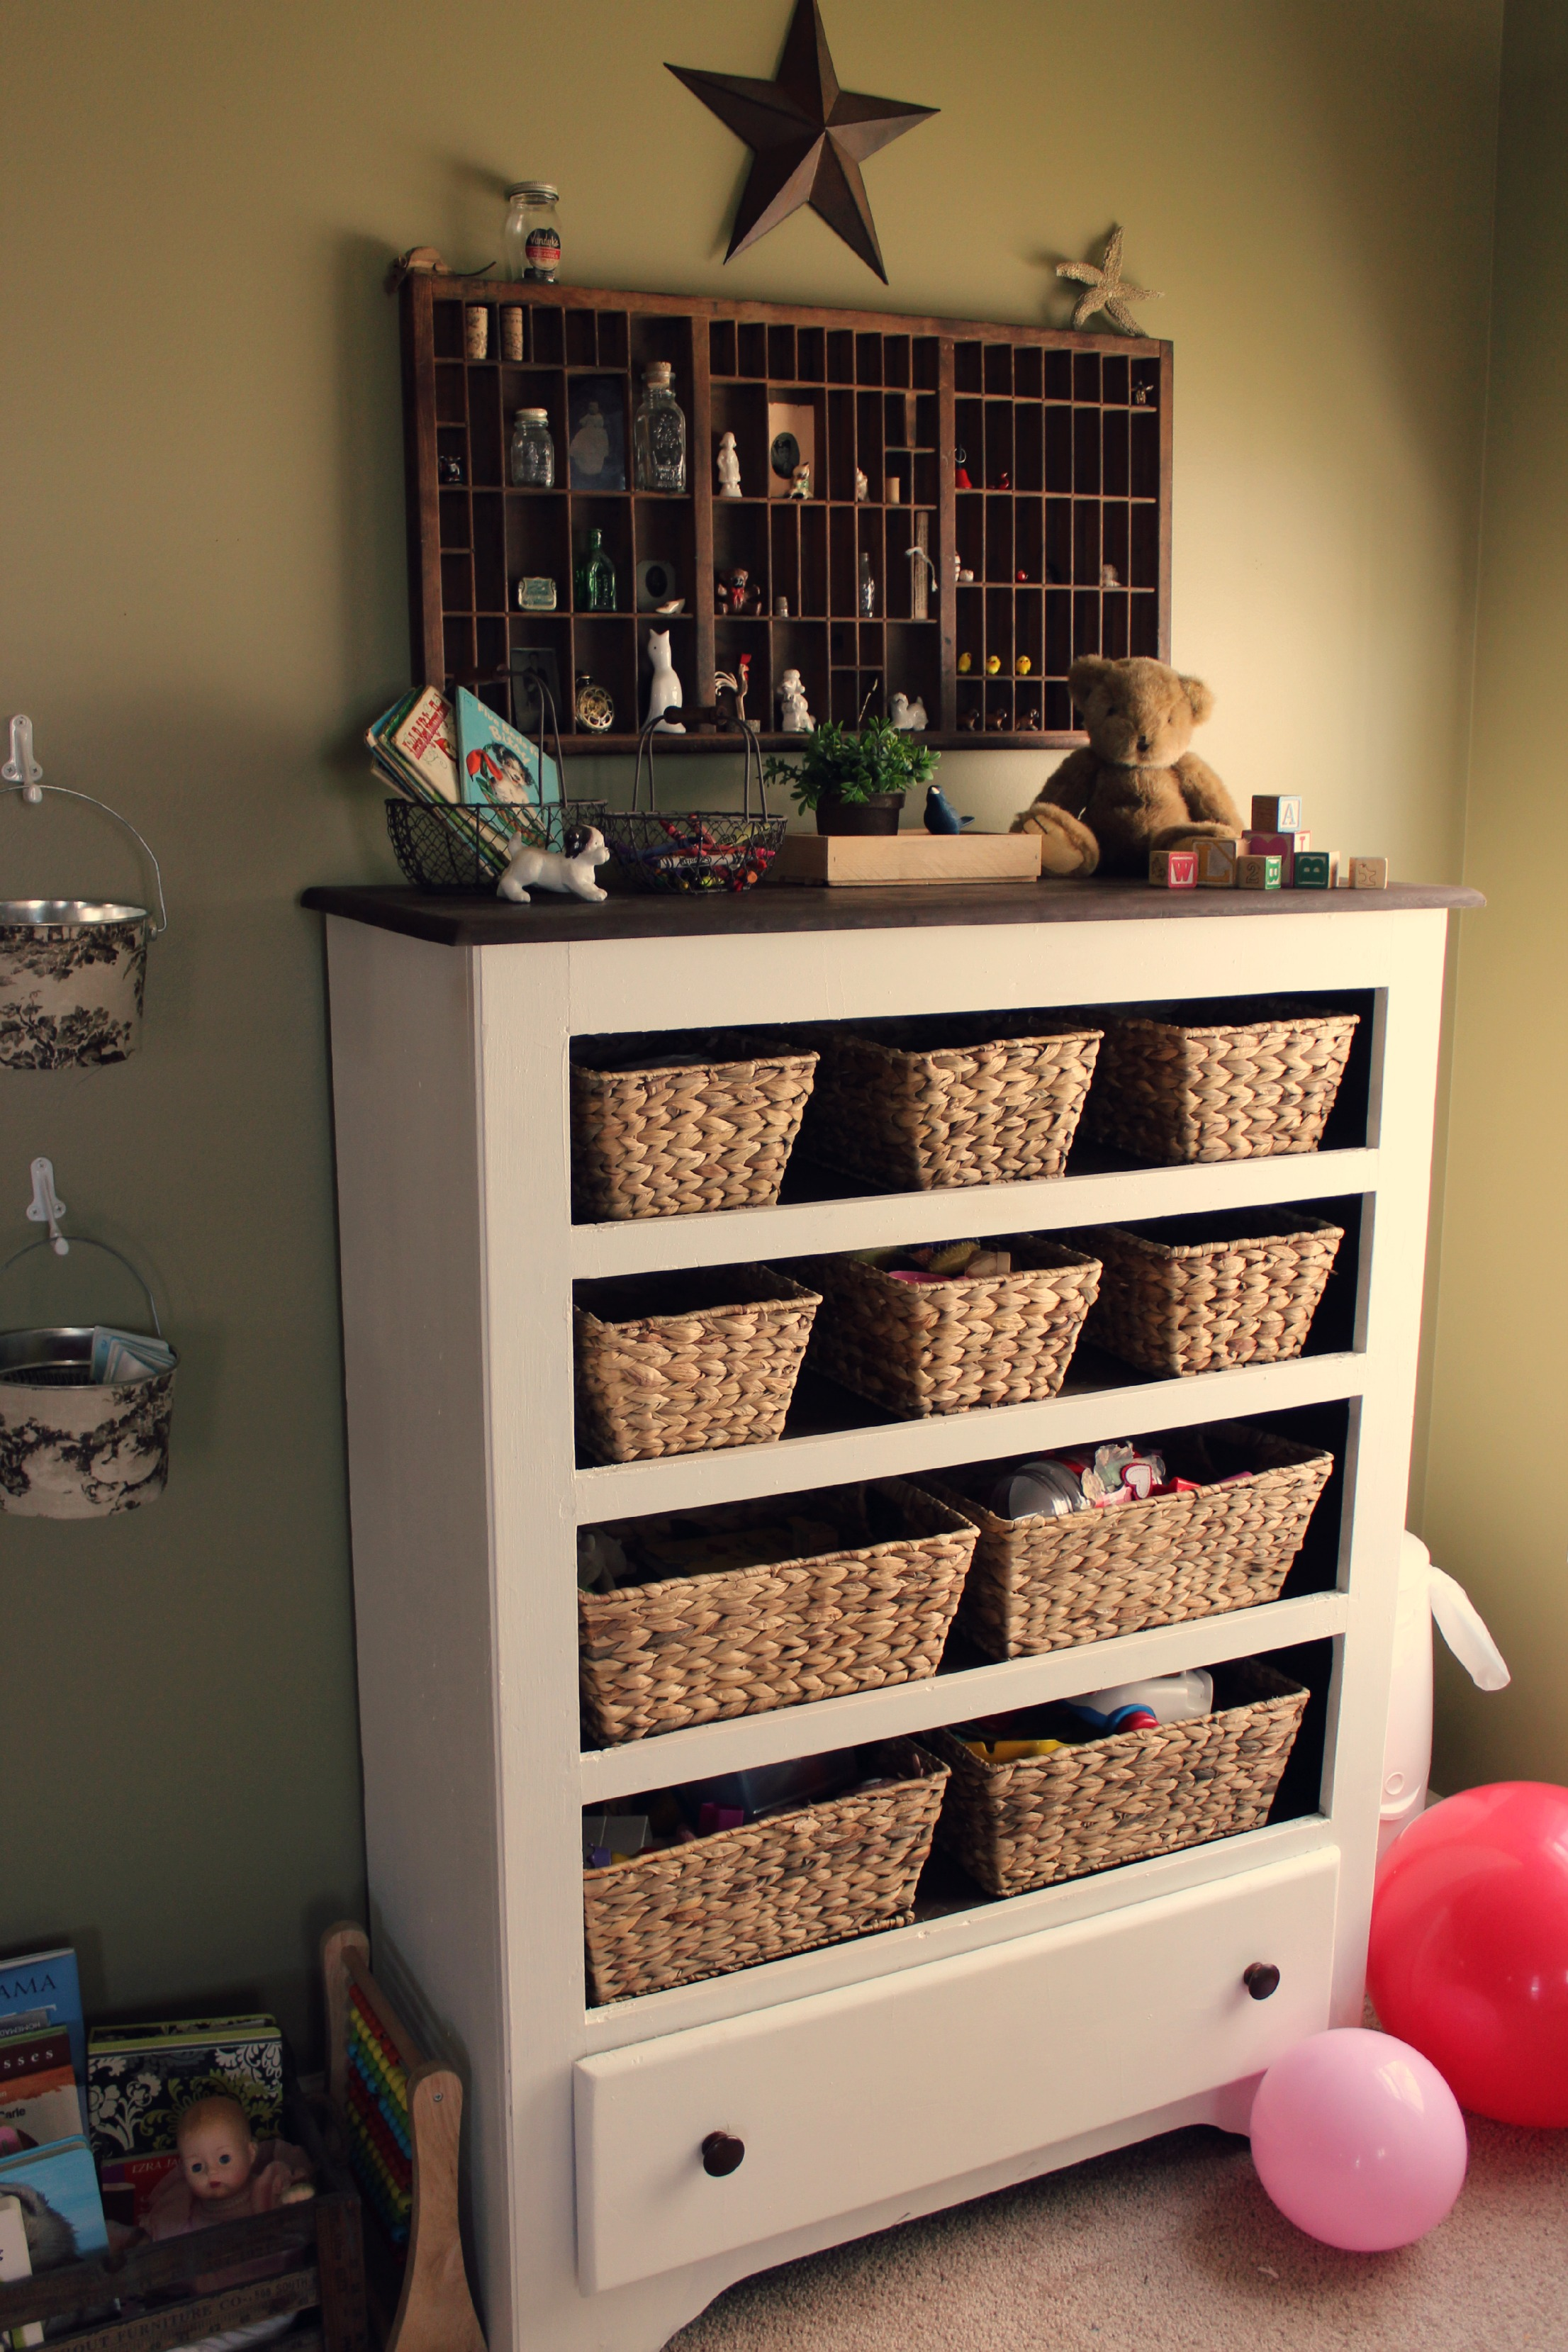 tetbury lateral bodhum basket pictures dresser storage accessories with wicker file of organizer drawer baskets very cabinet chest favorite drawers wide